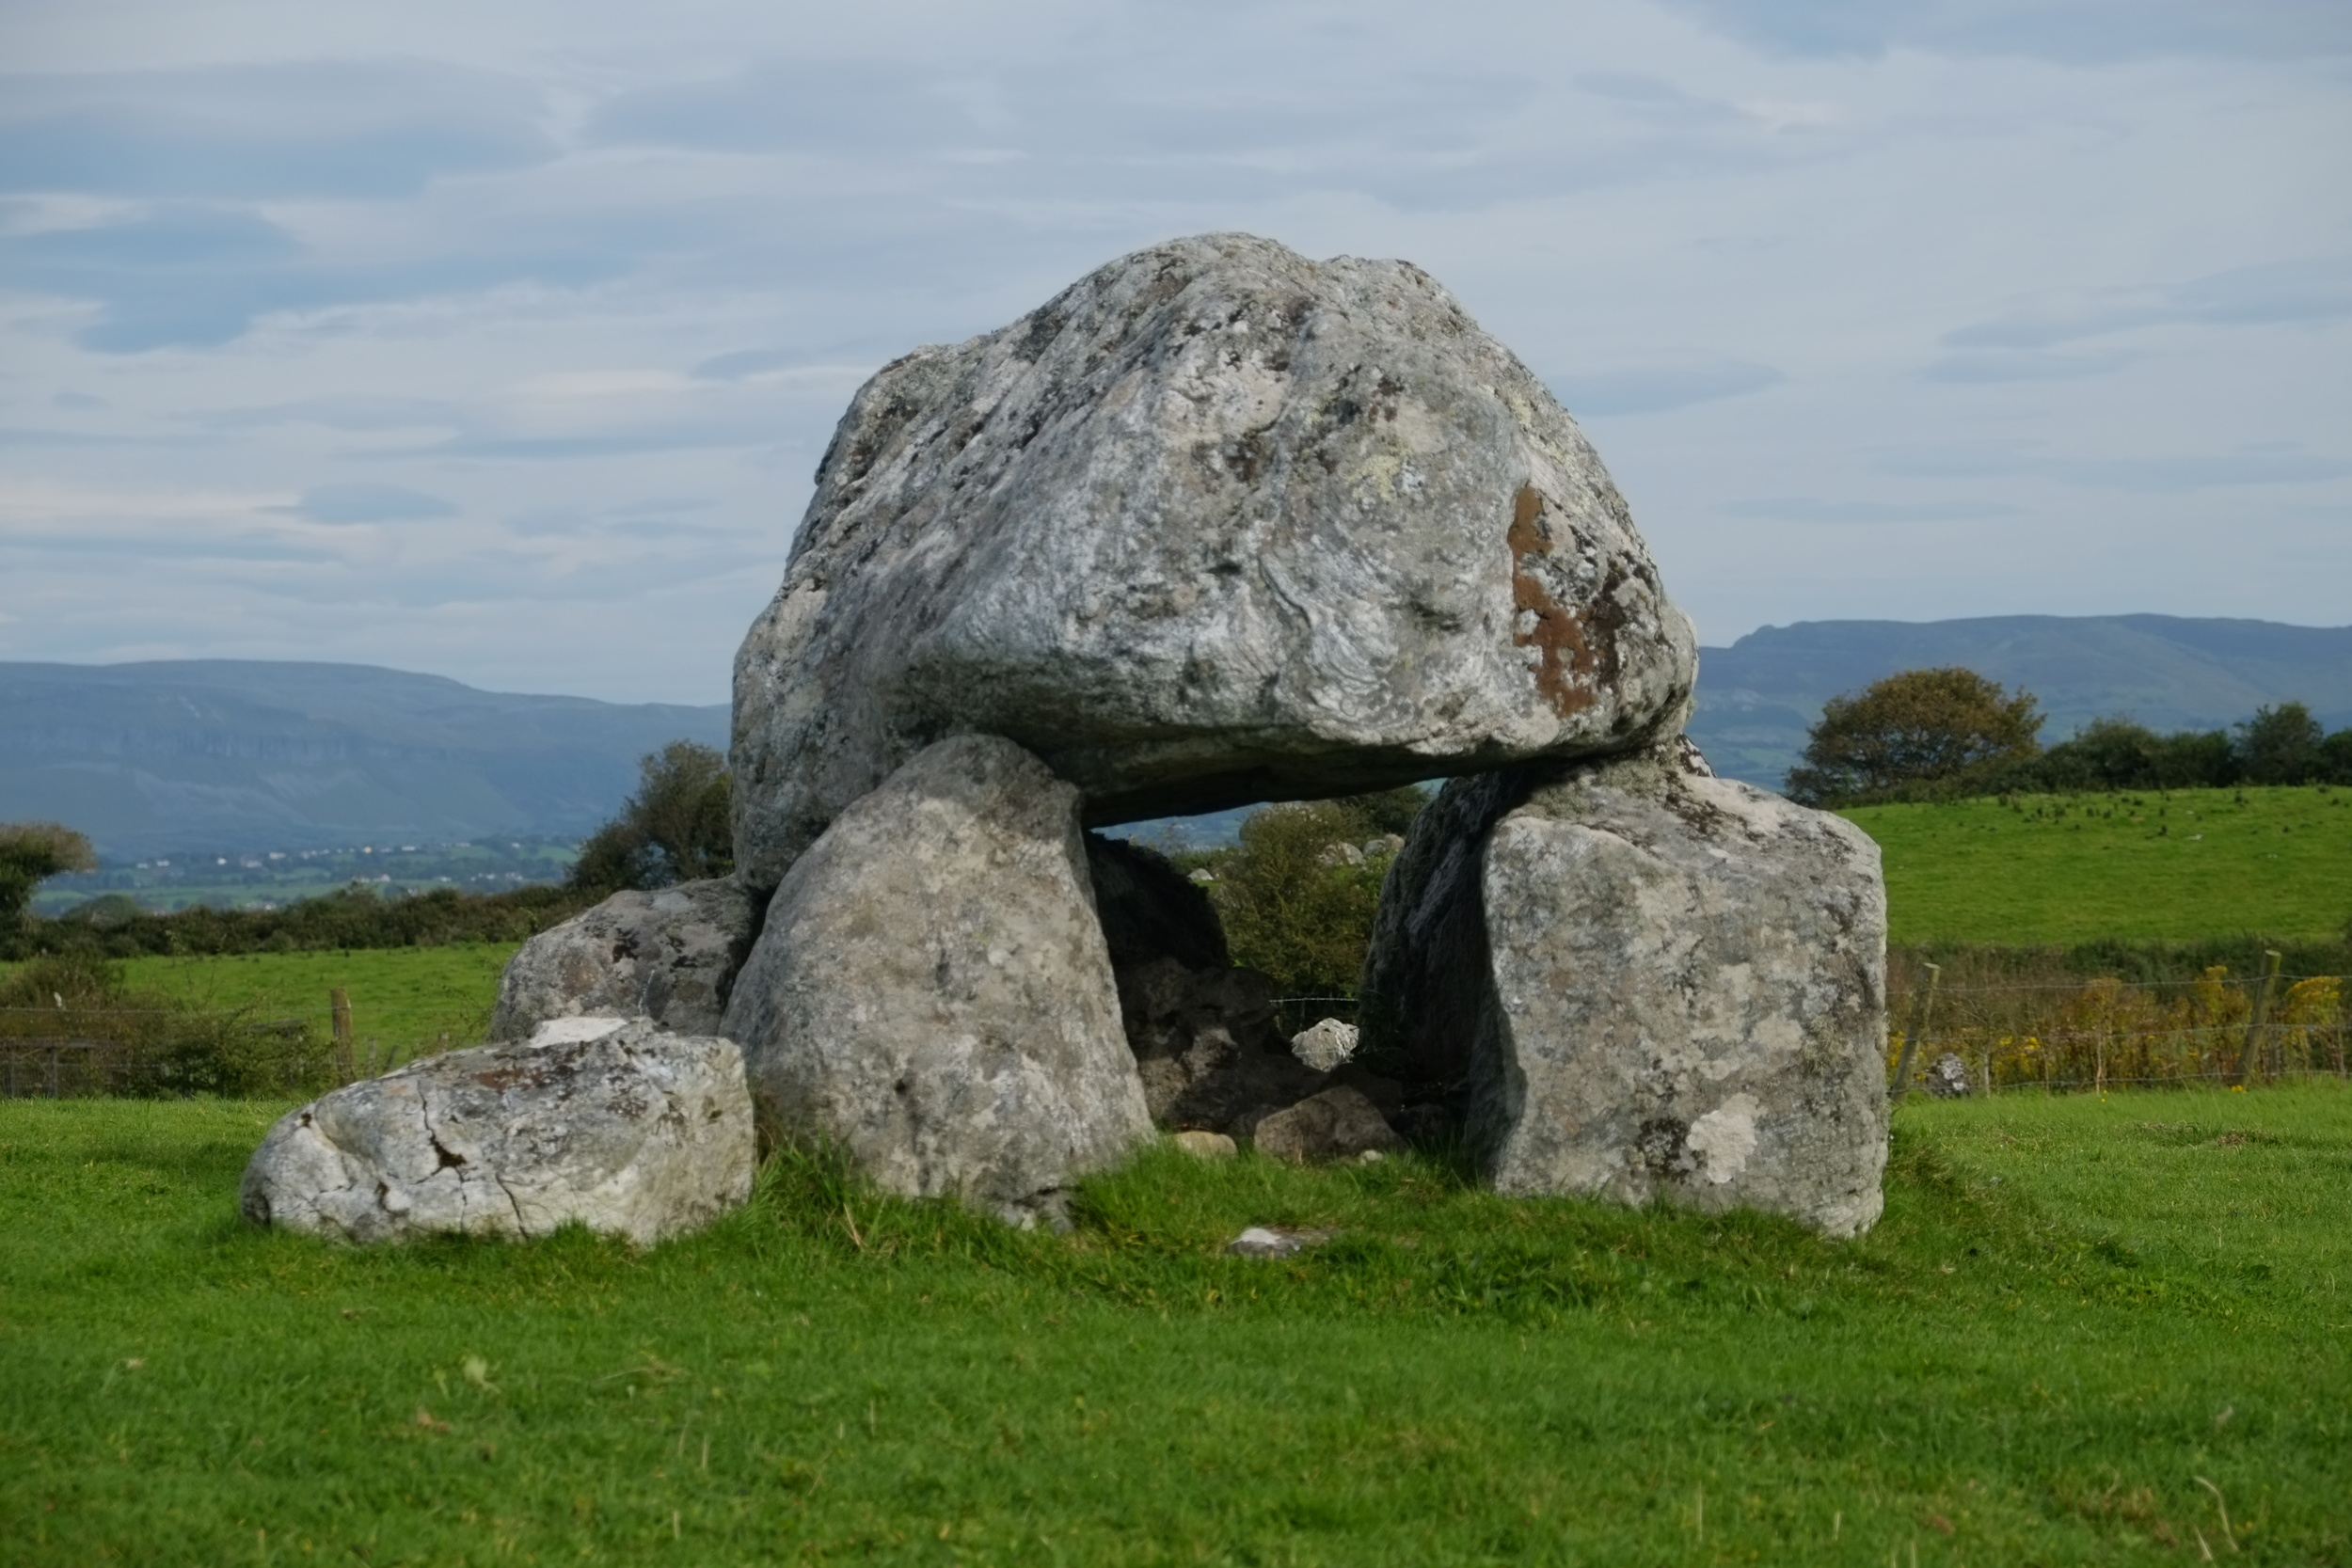 Megalithic tomb, Carrowmore, Strandhill, Sligo, Ireland